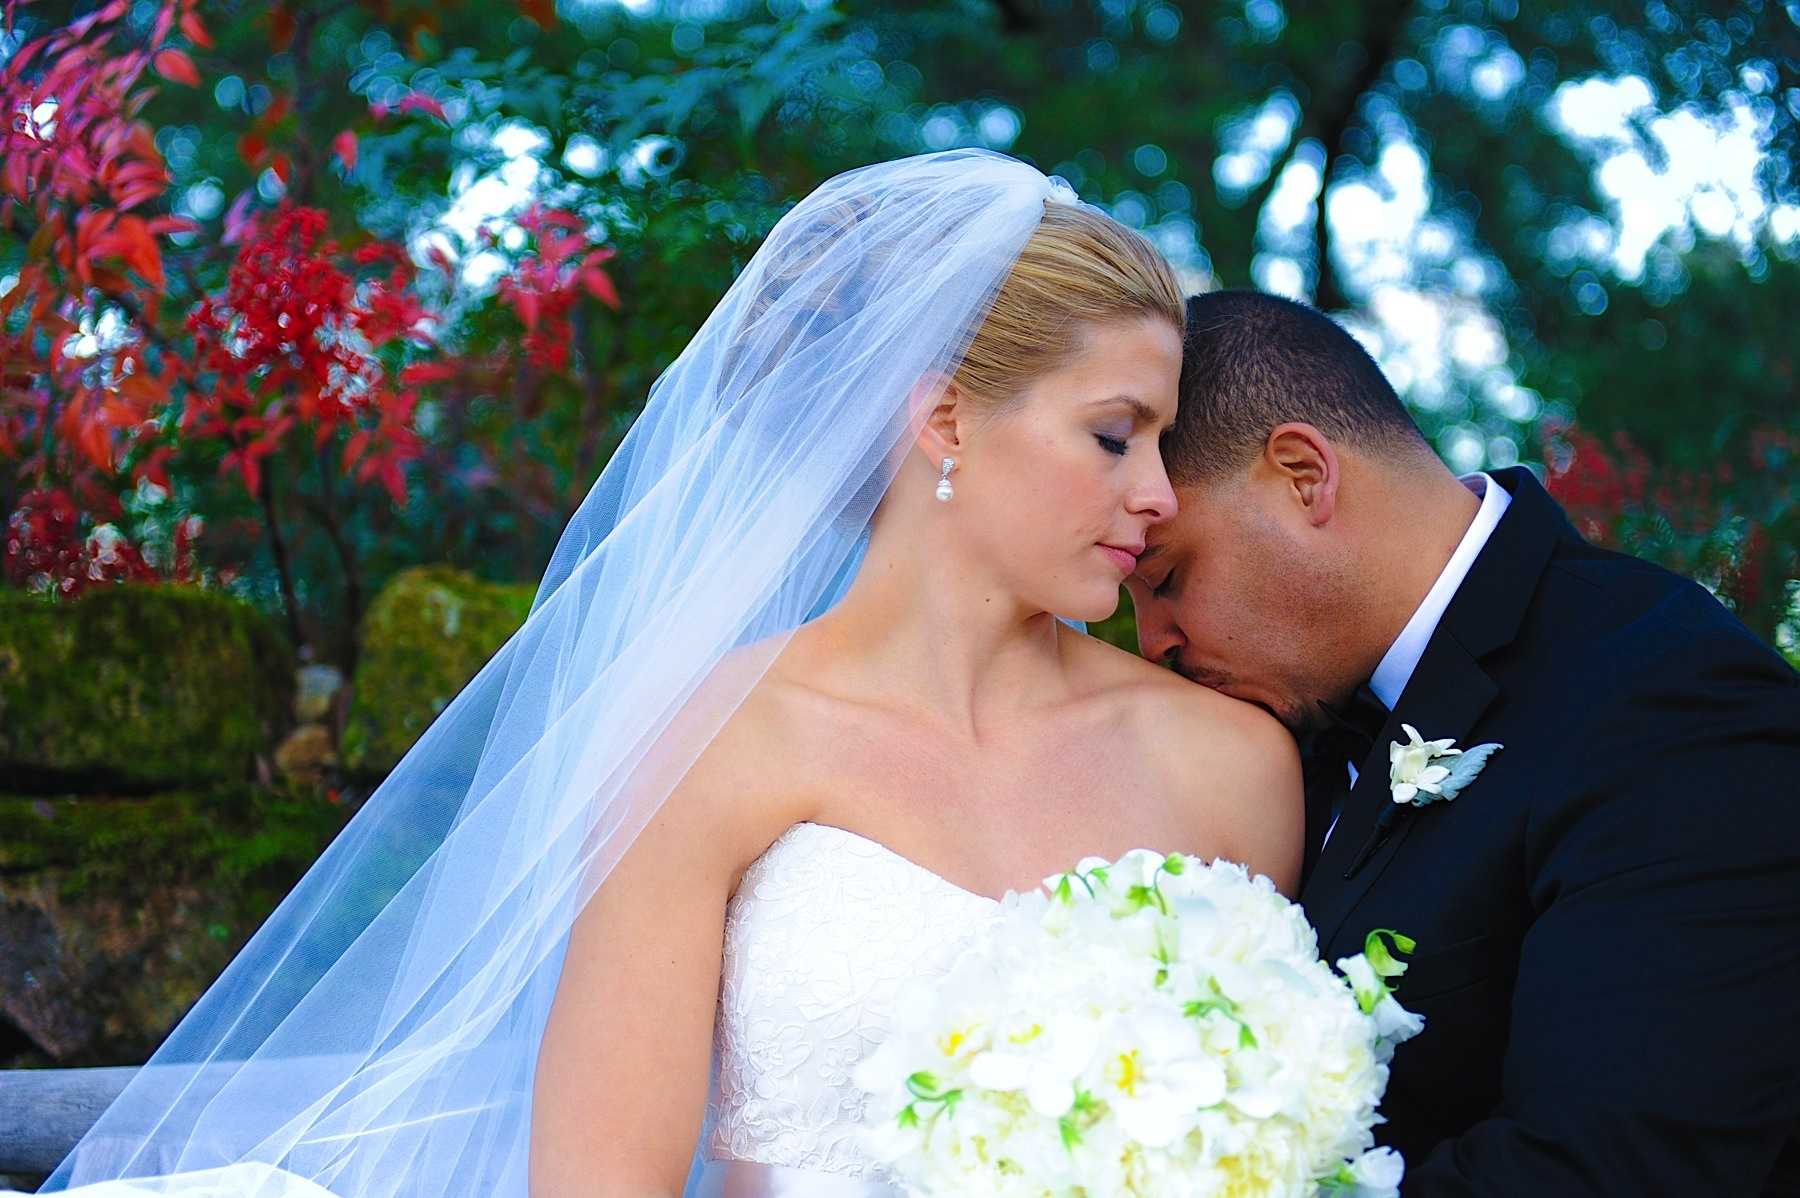 Culinary Institute Napa Wedding Photographer.  Specialzing in Destination and Elopement Photography in the Wine Country (Napa & Sonoma)